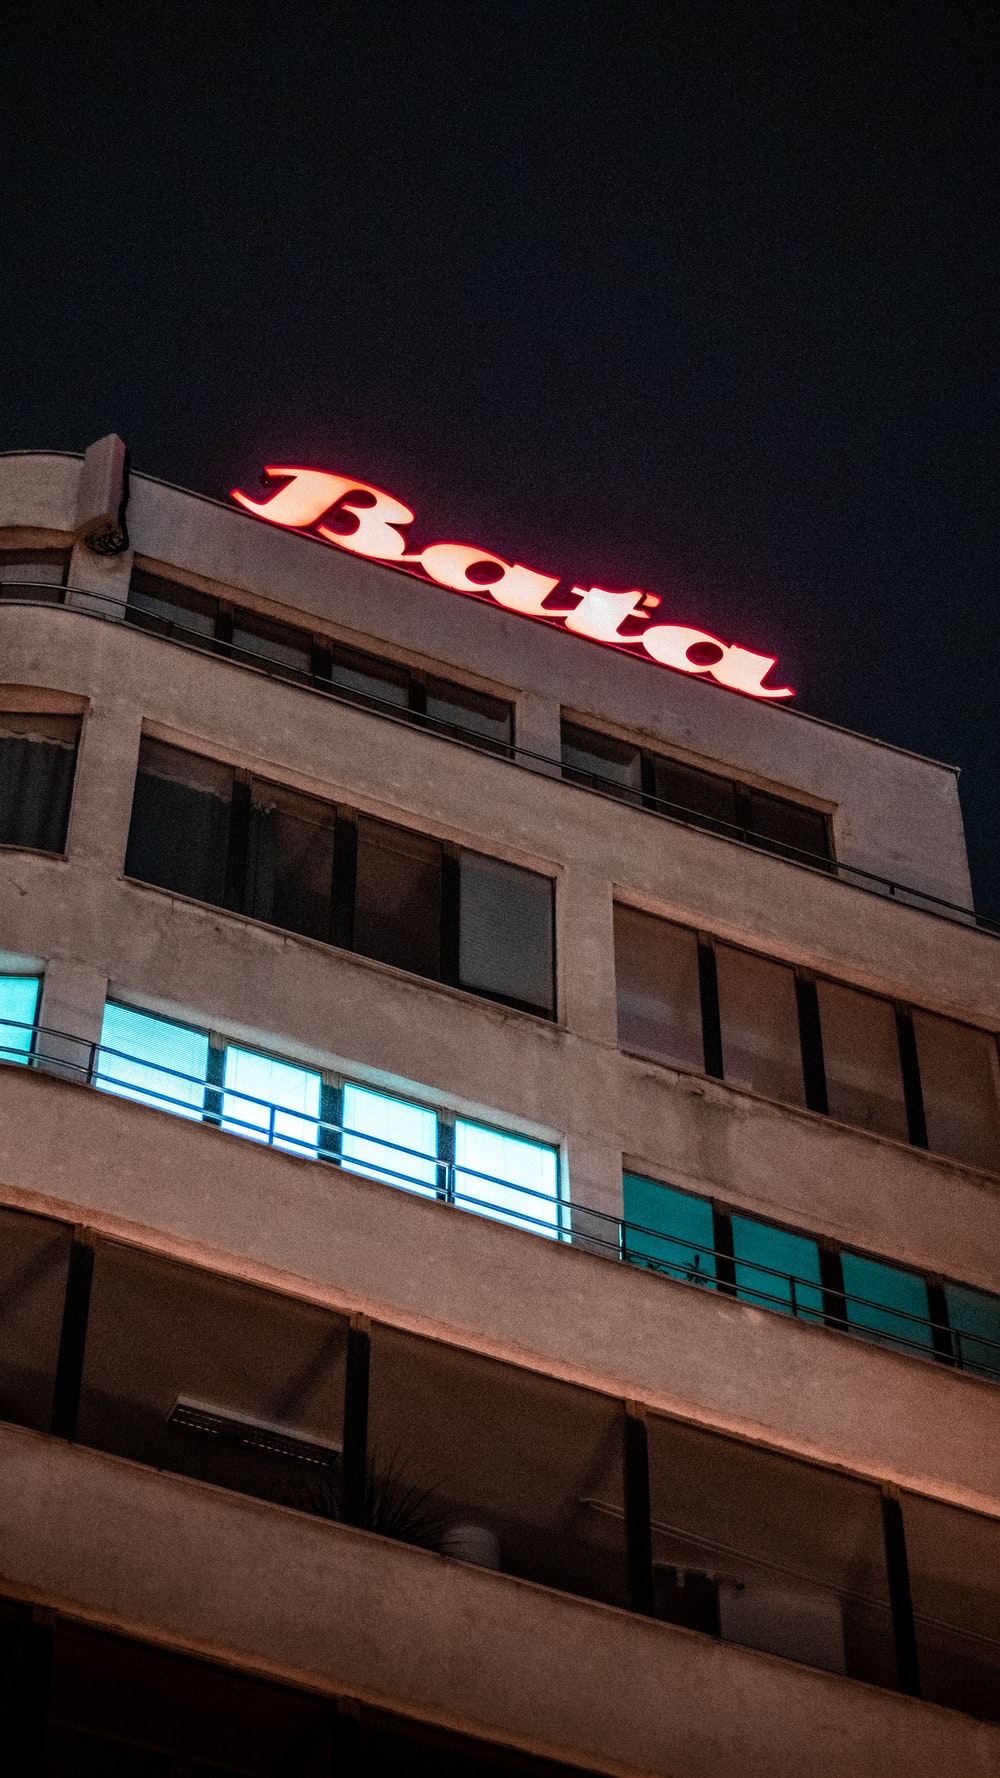 brown concrete building with red and blue neon light signage